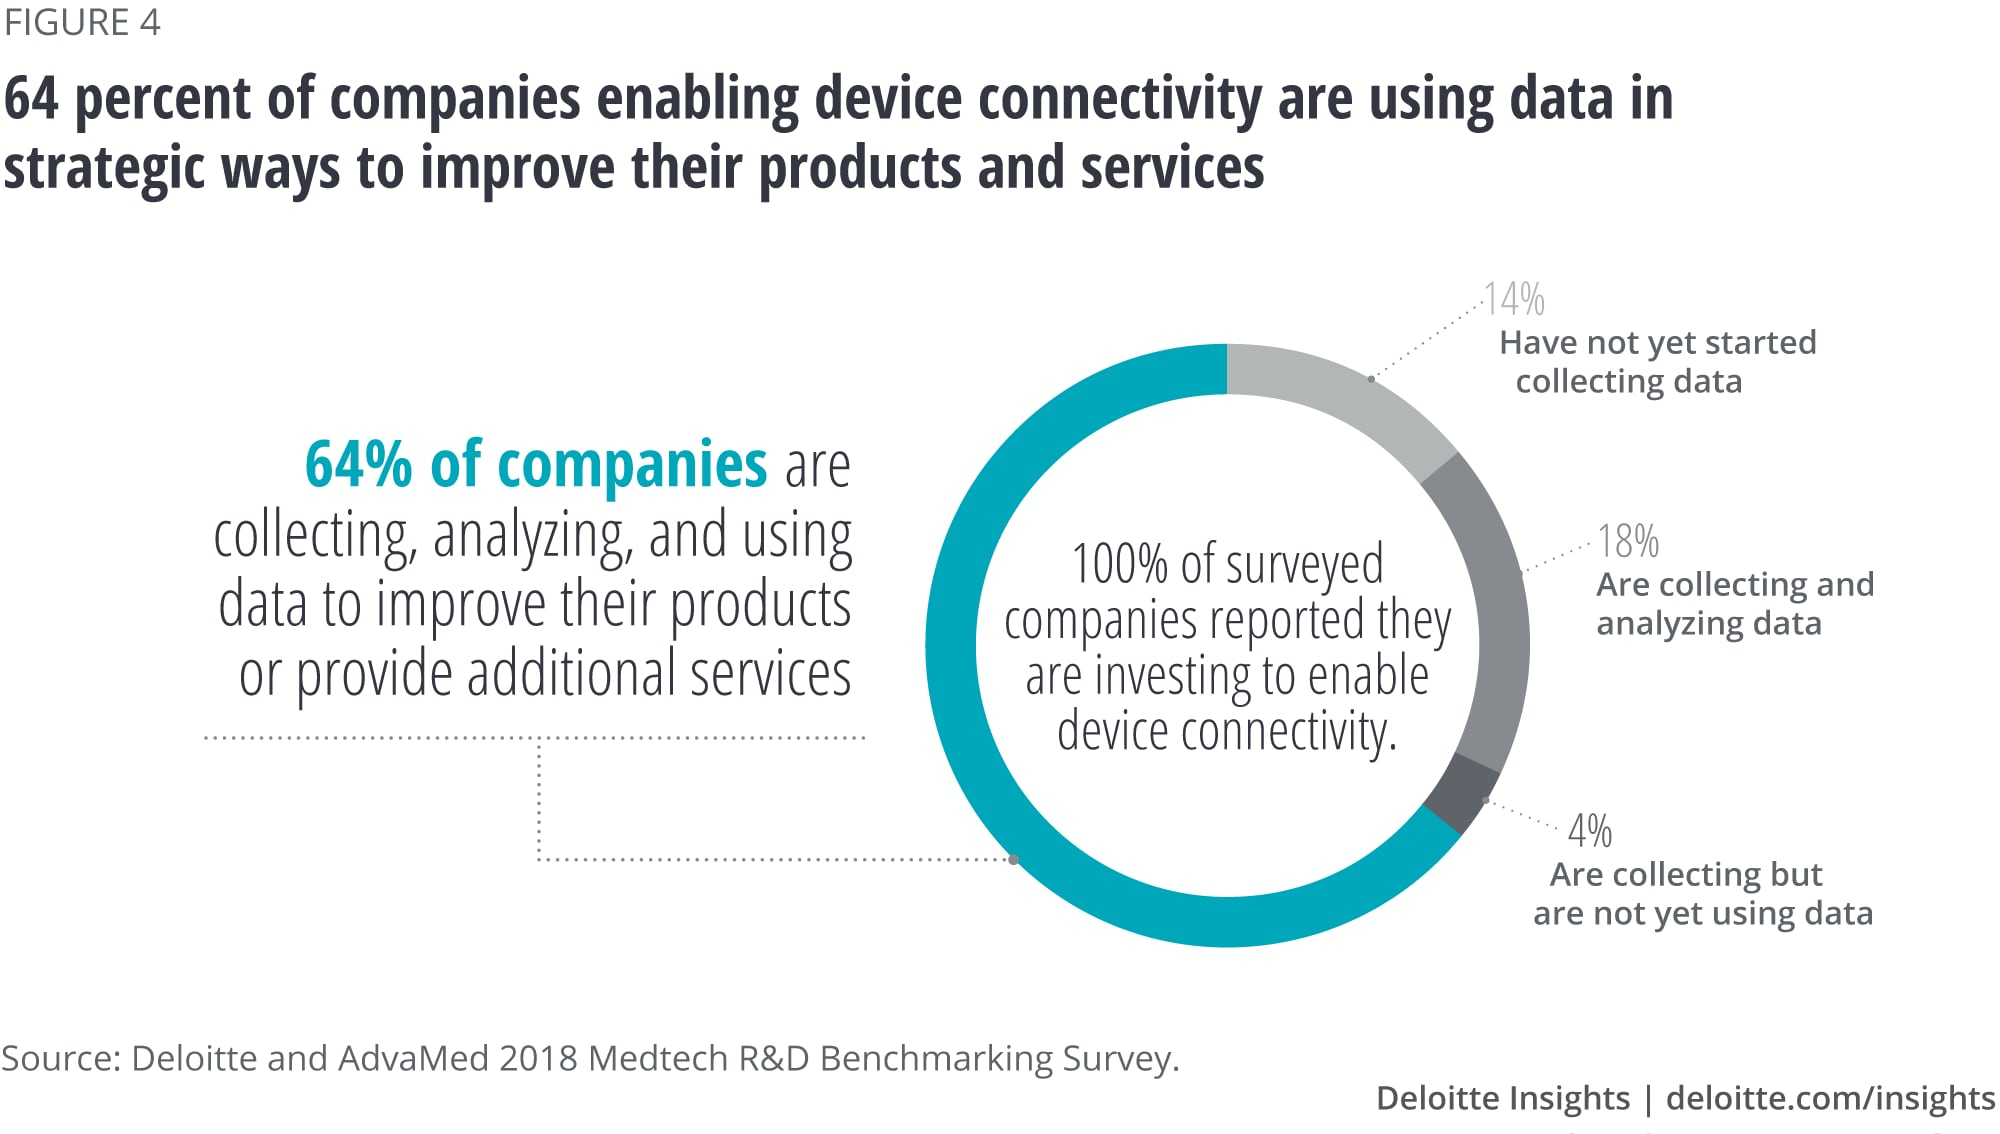 Sixty-four percent of companies enabling device connectivity are using data in strategic ways to improve their products and services